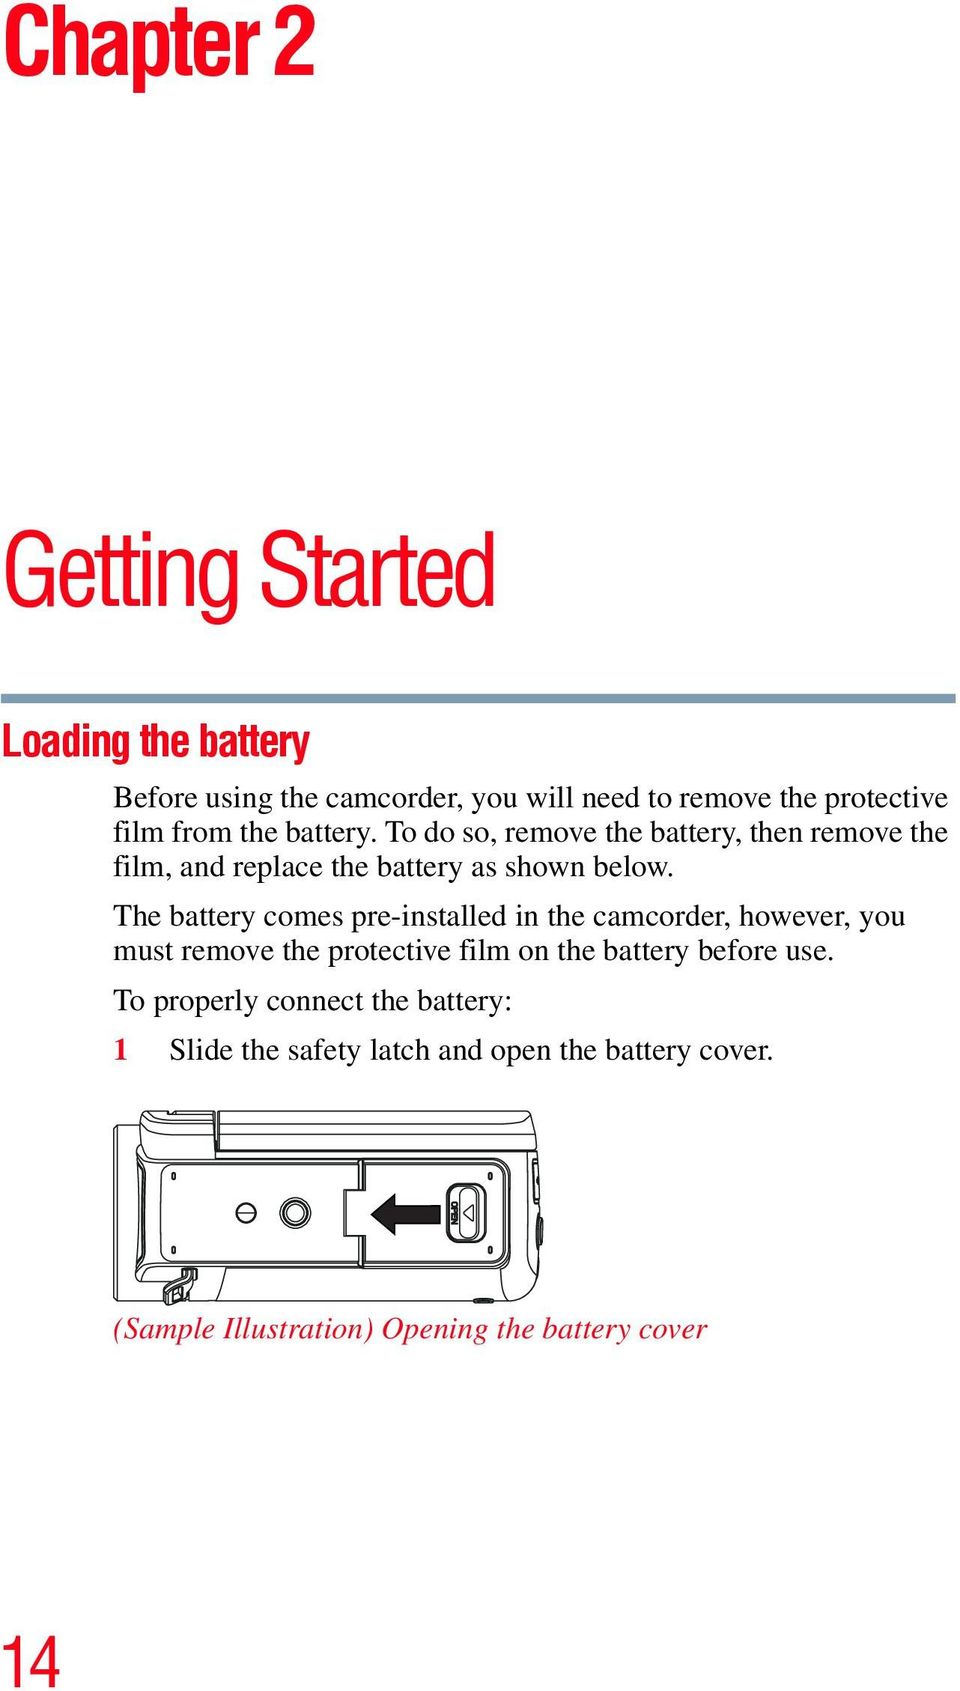 The battery comes pre-installed in the camcorder, however, you must remove the protective film on the battery before use.